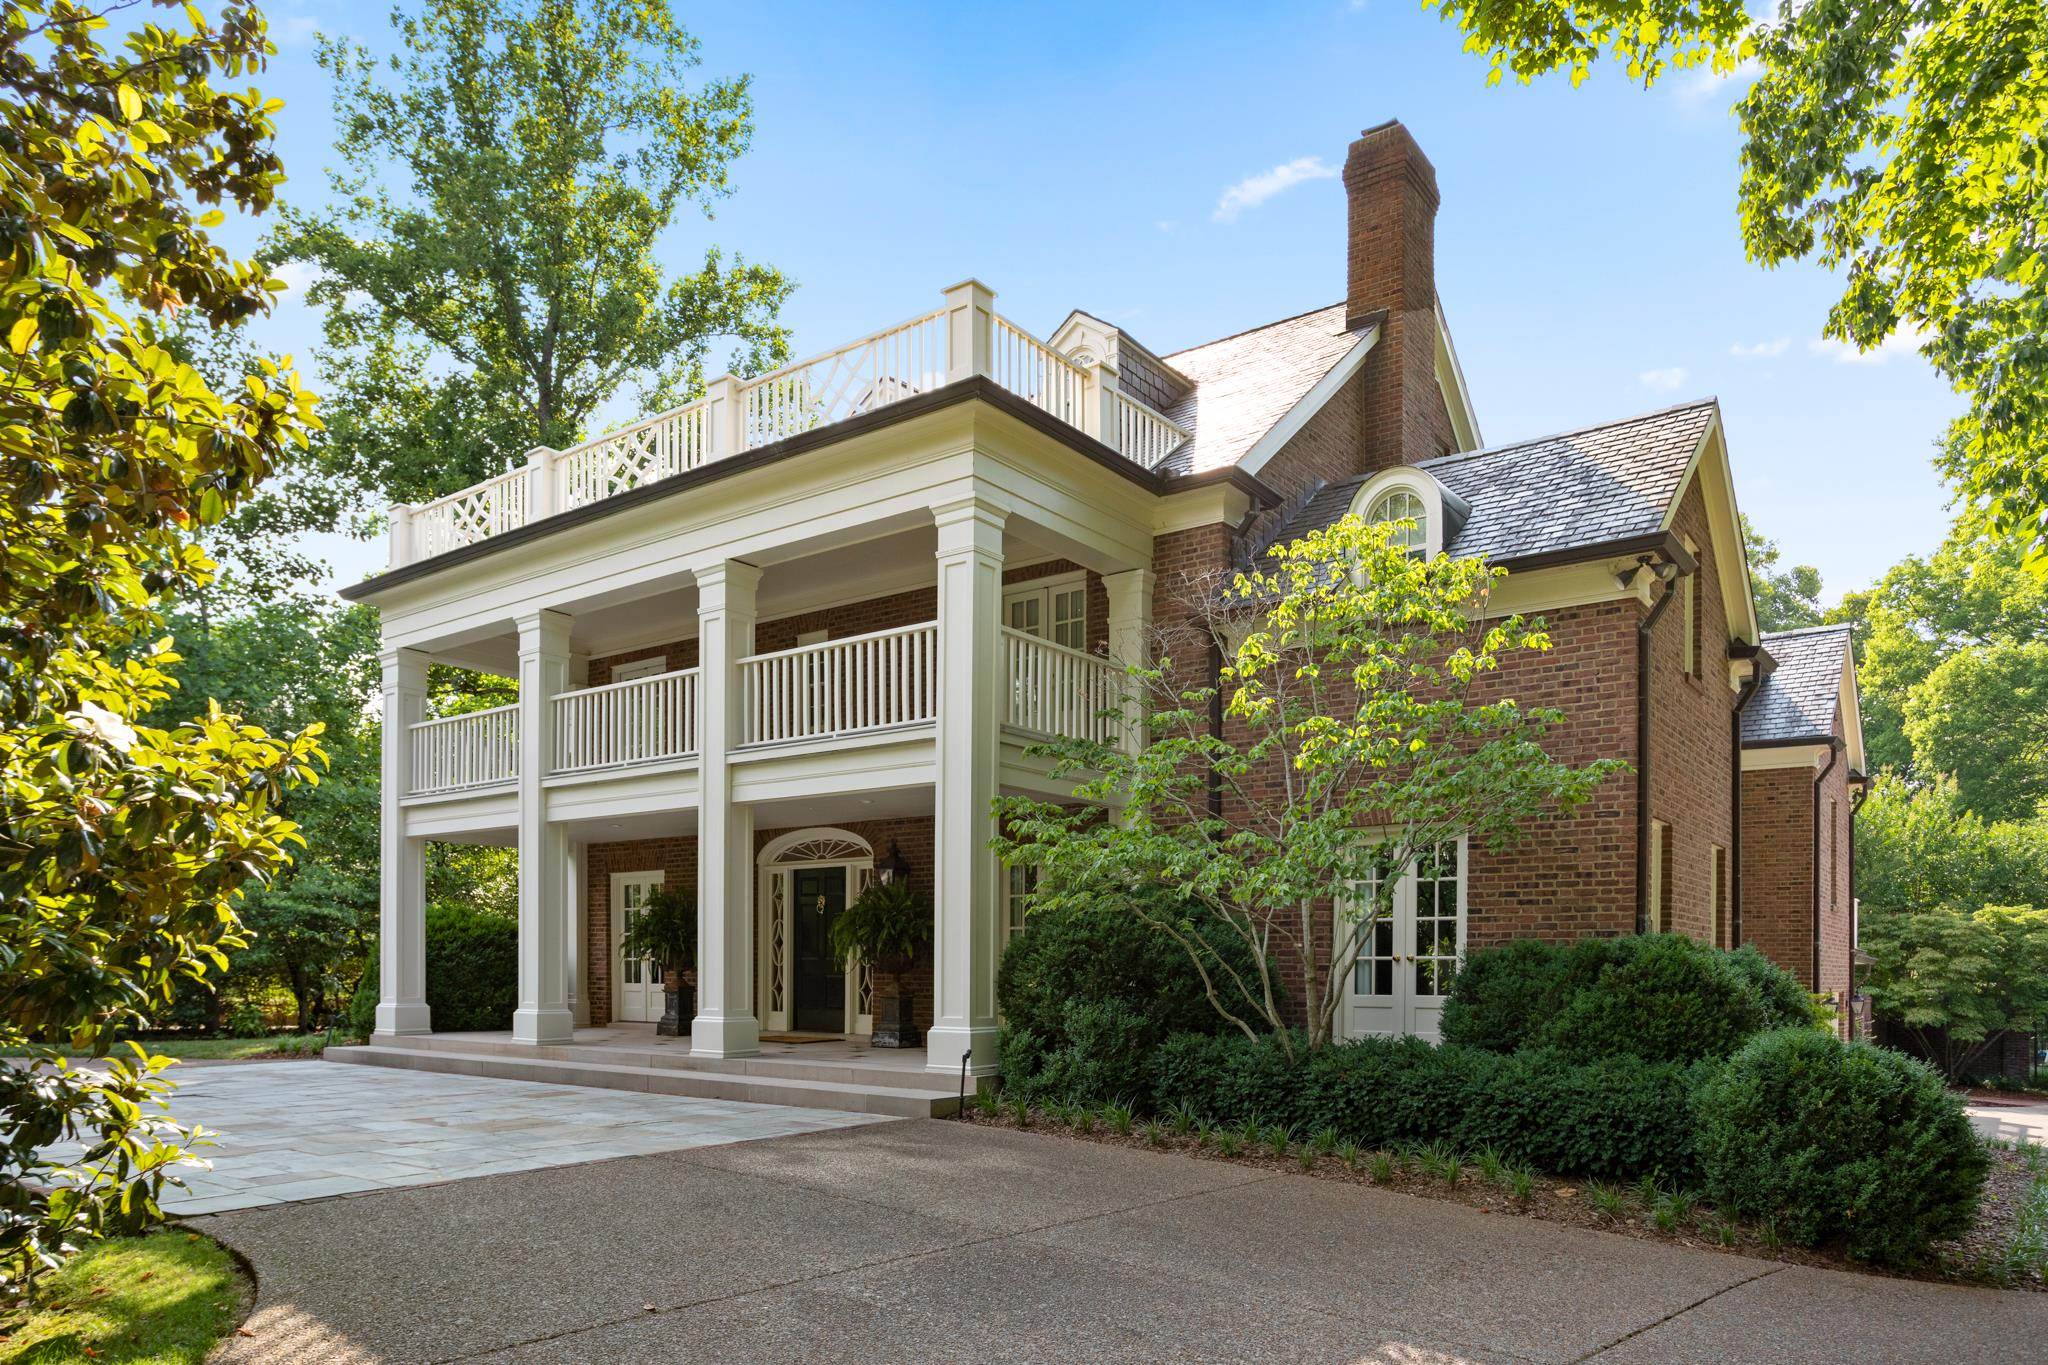 1109 Belle Meade Blvd, Nashville, TN 37205 - Nashville, TN real estate listing